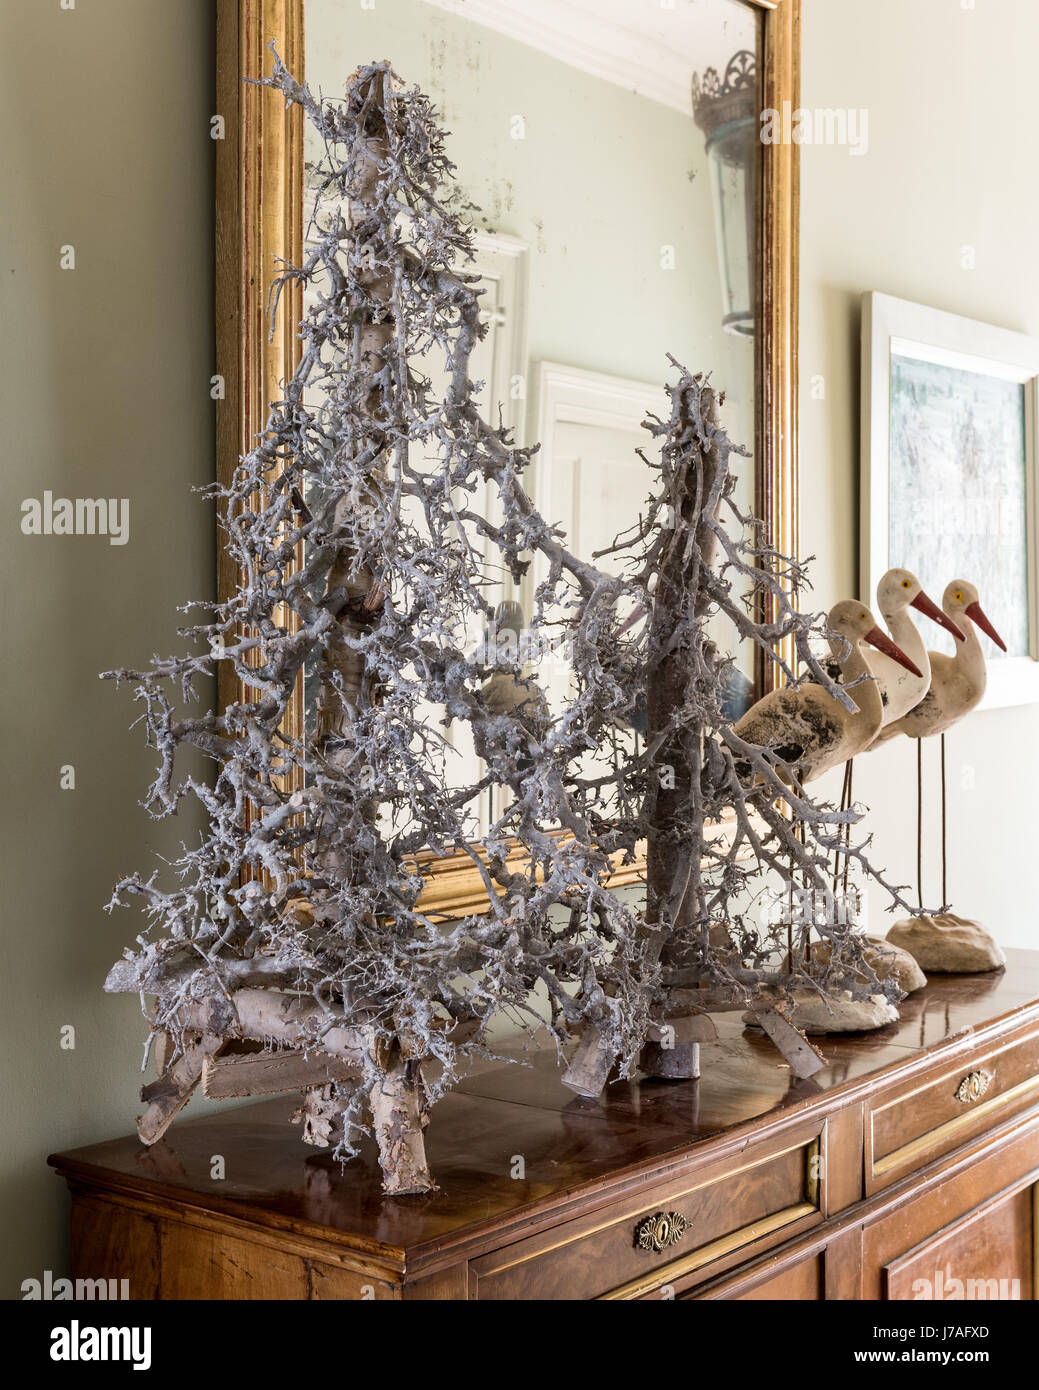 Decorative twig christmas trees on hallway console table - Stock Image